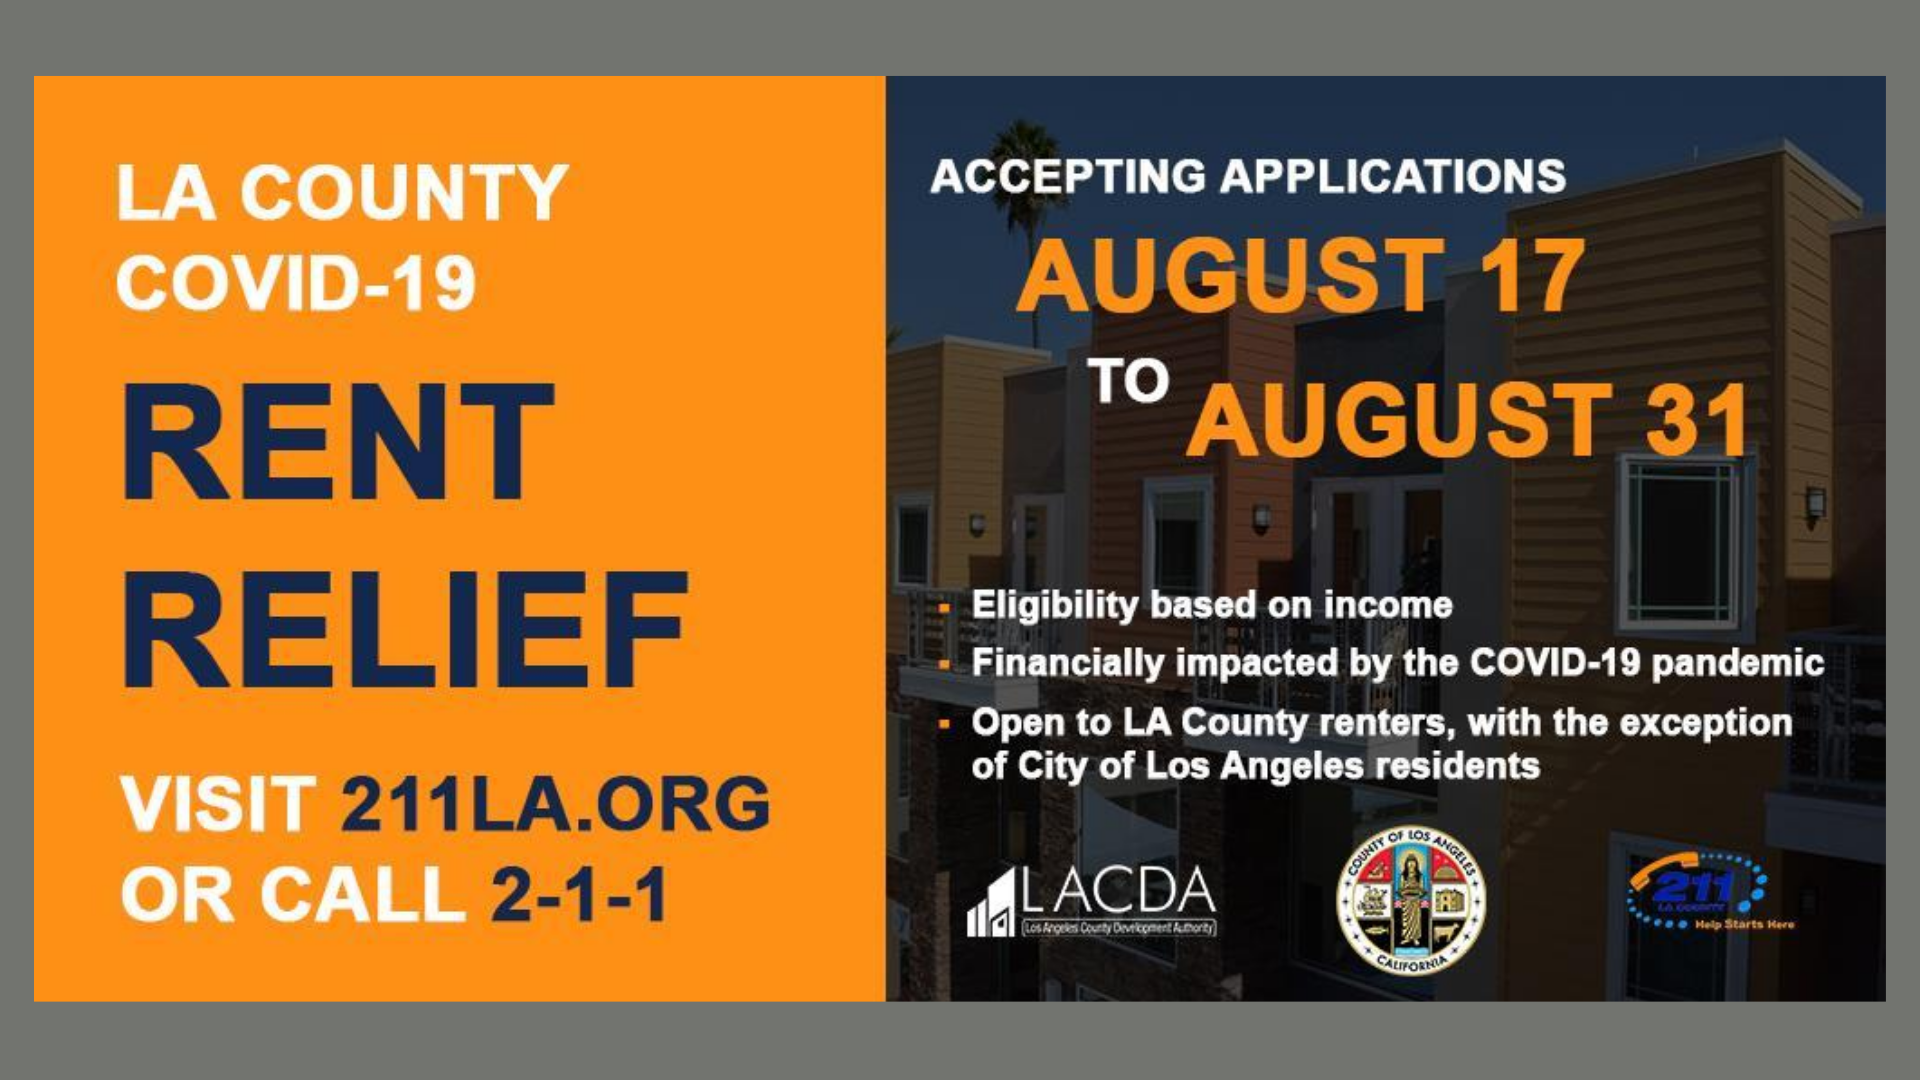 LA County COVID-19 Rent Relief